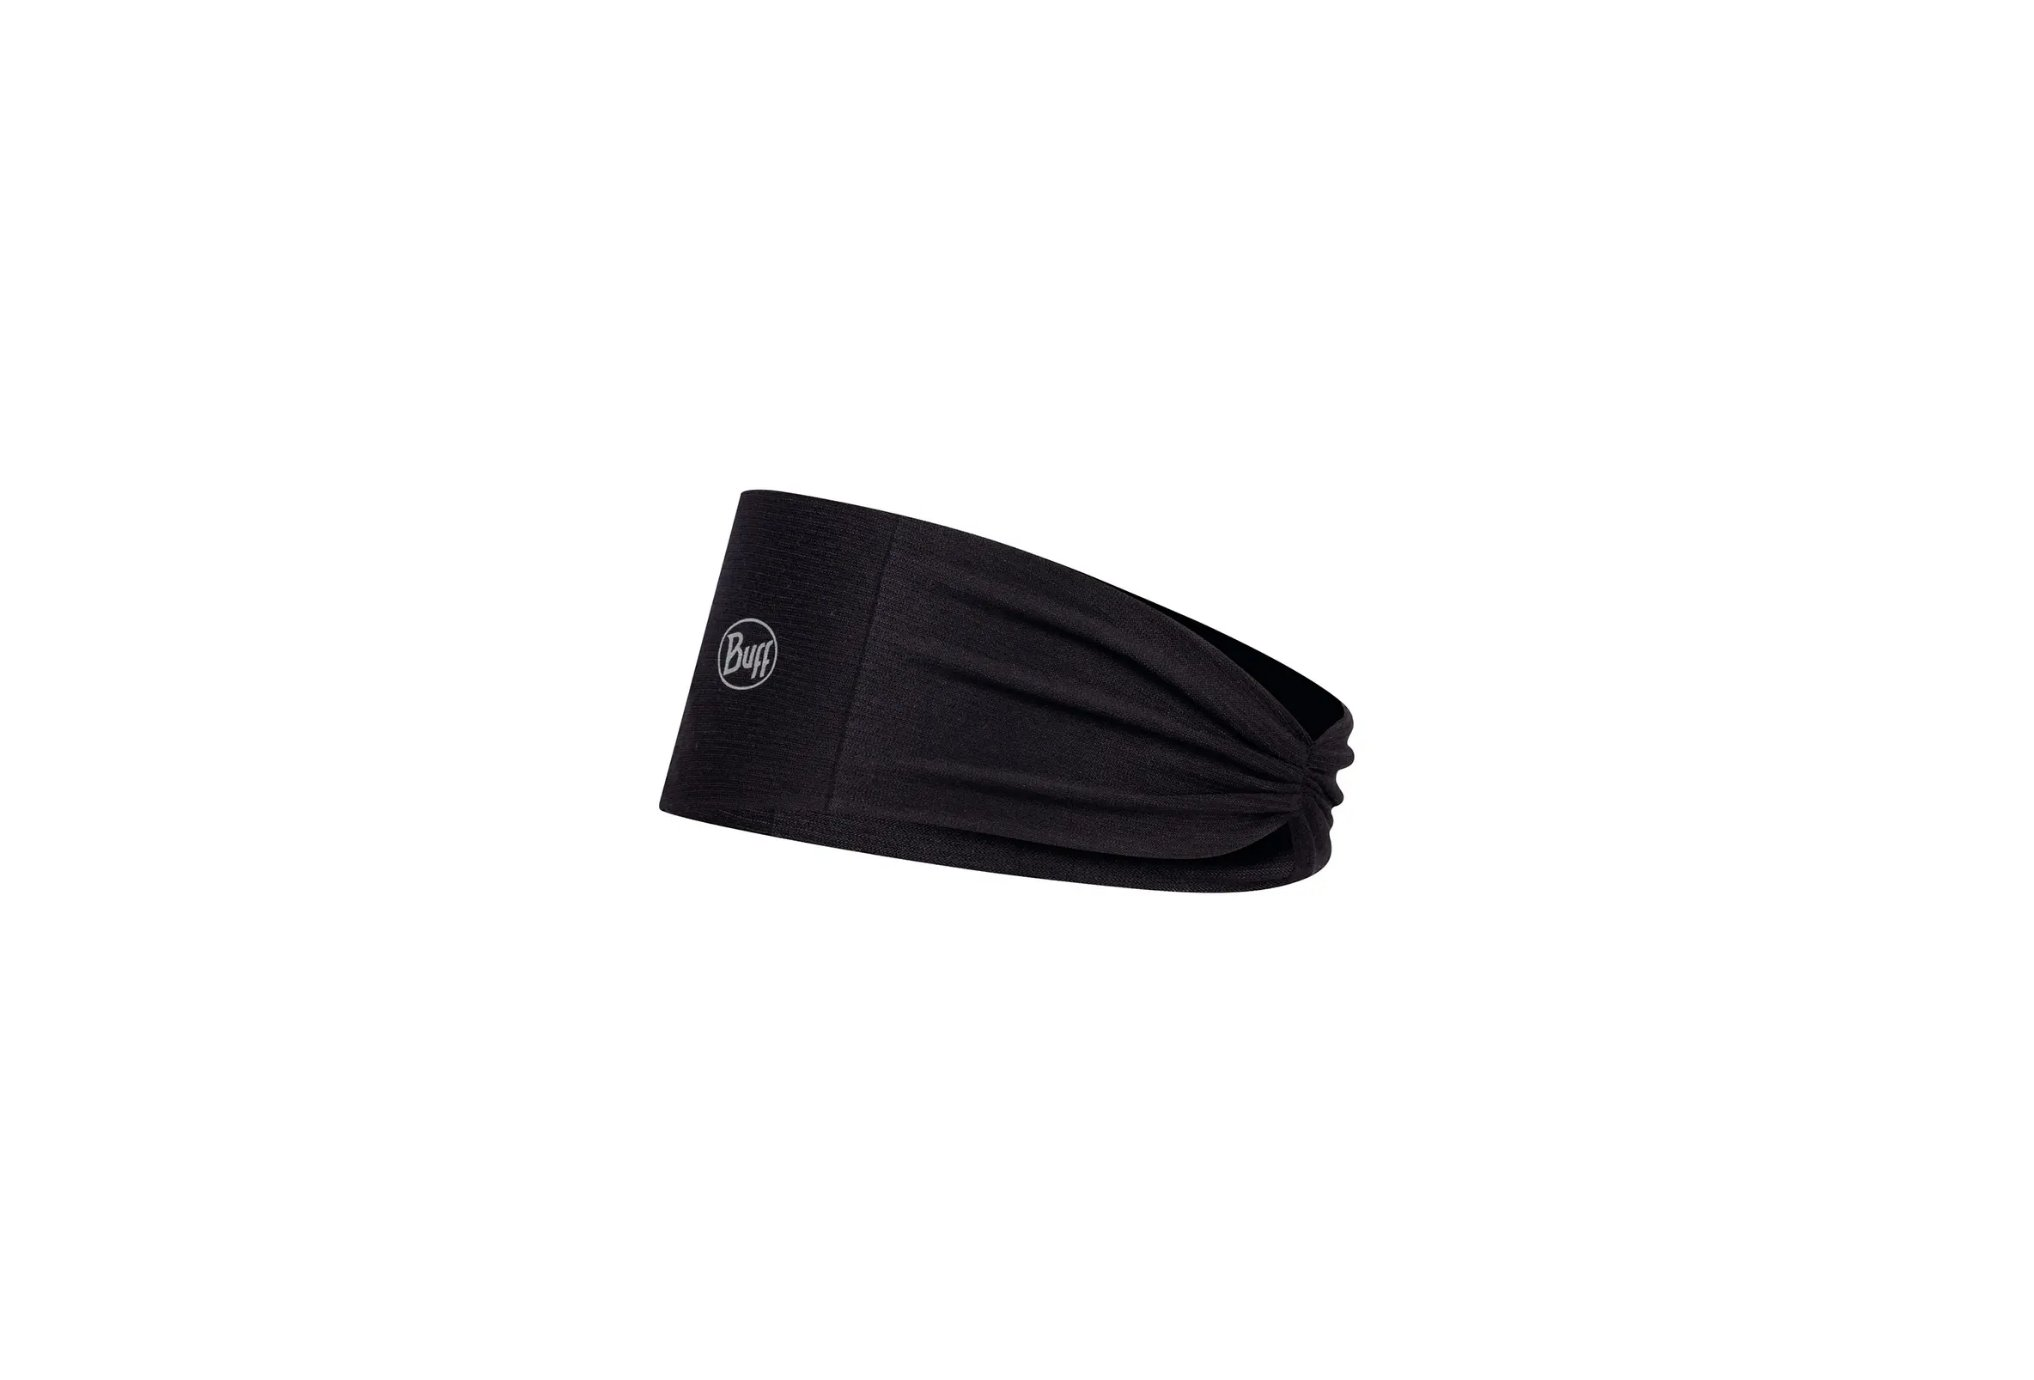 Buff Tapered Coolnet UV+ Solid Black HTR Casquettes / bandeaux